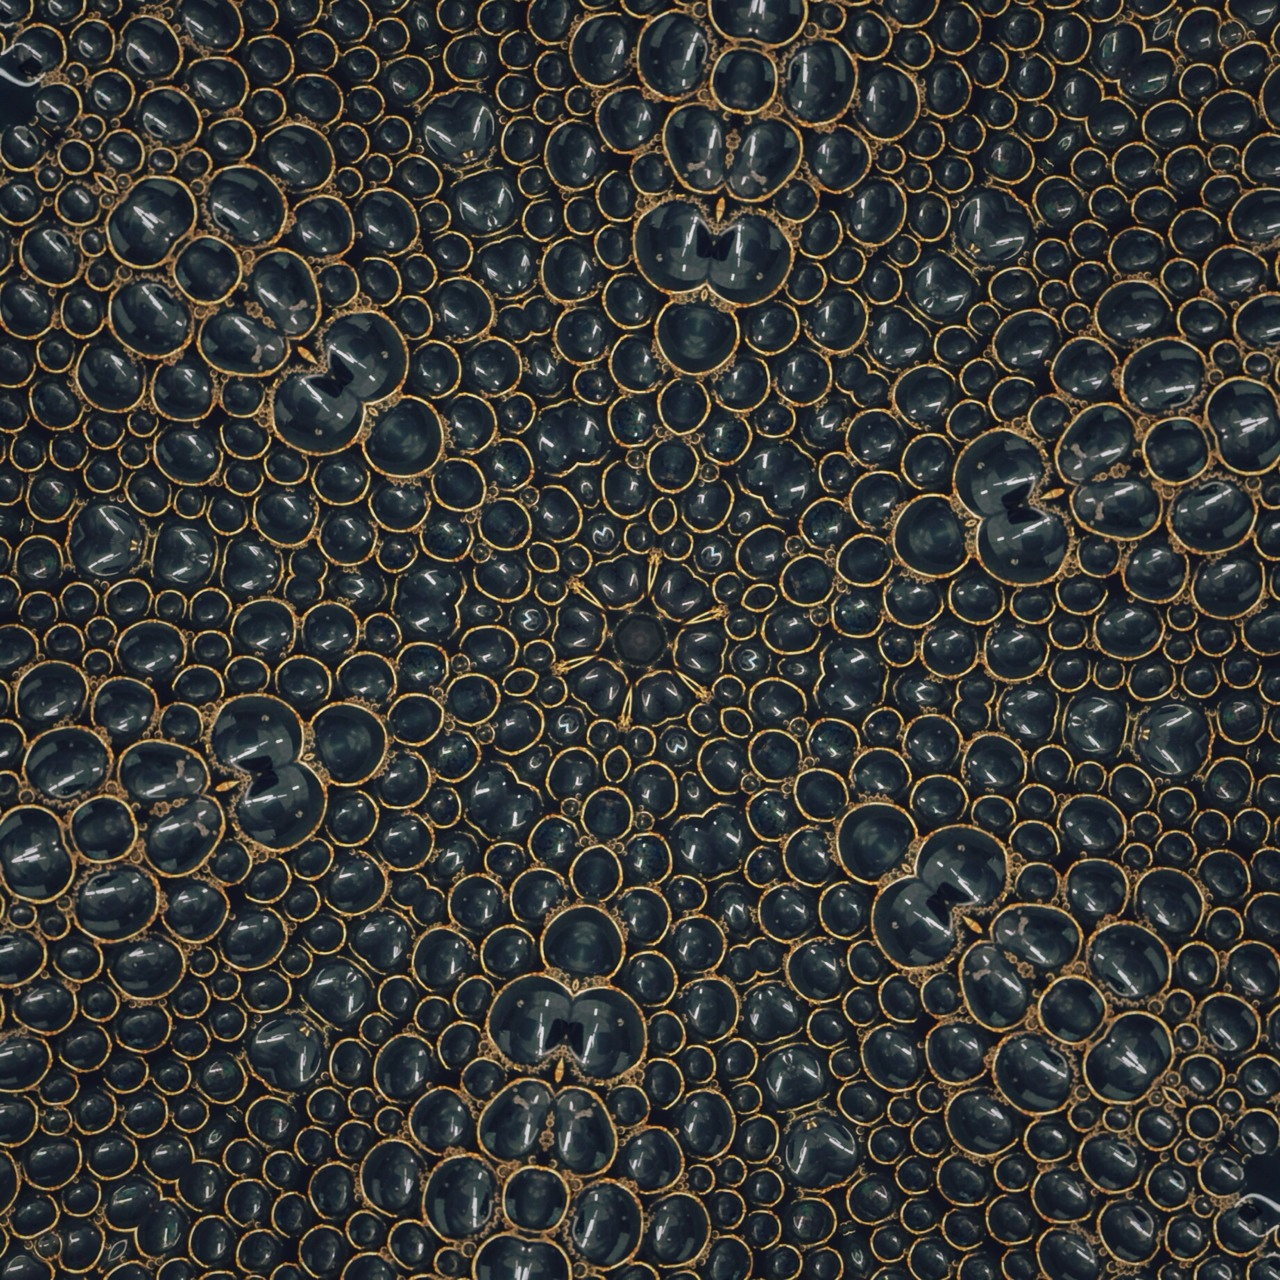 sacred geometry (coffee bubbles edition)